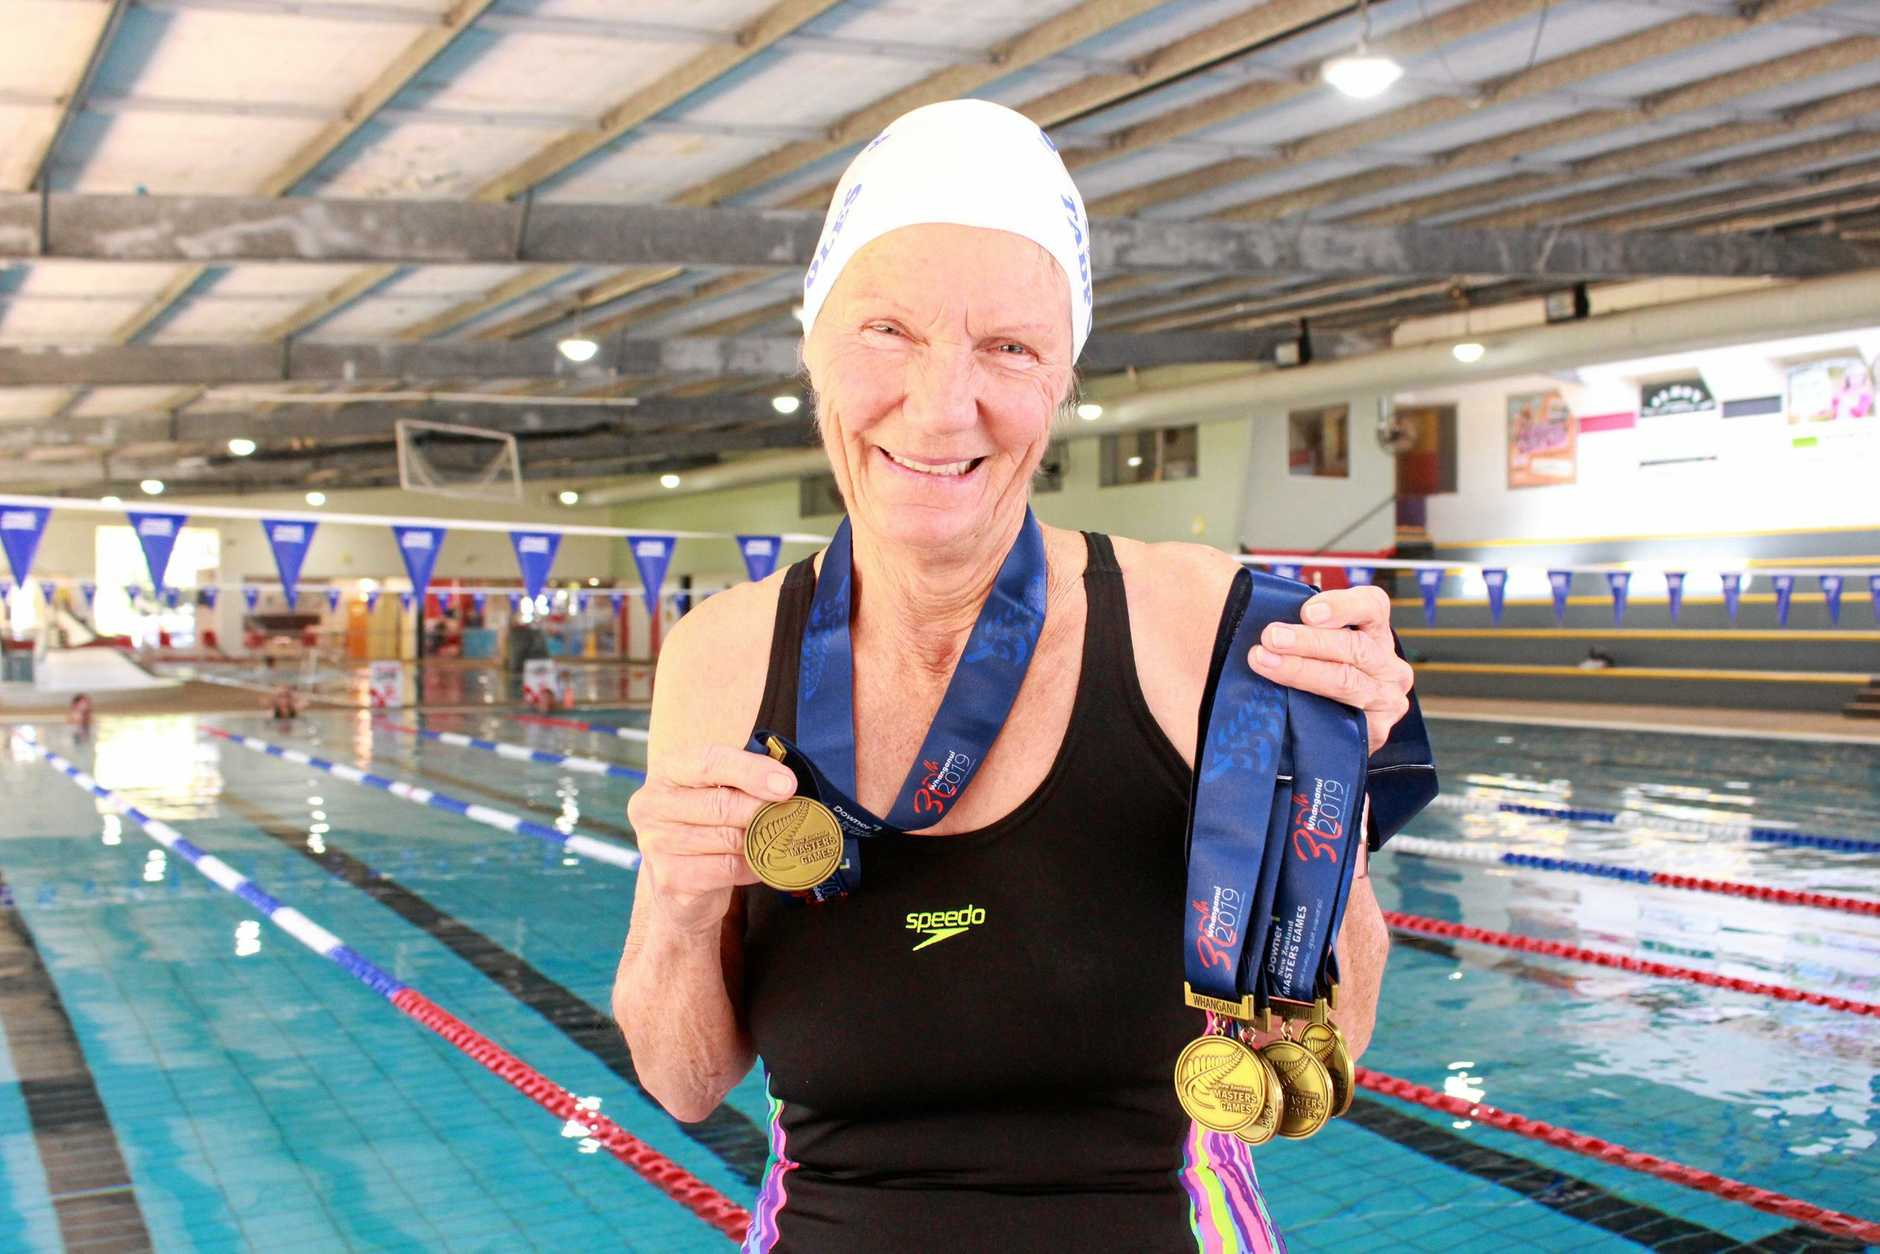 At 76 years of age, Hanna Wassenaar has her dad to thank for the passion he passed on after surviving World War 2 against all odds. She just returned from New Zealand after winning five gold medals in swimming at the Masters Games. She is getting back into training at WIRAC in Warwick.